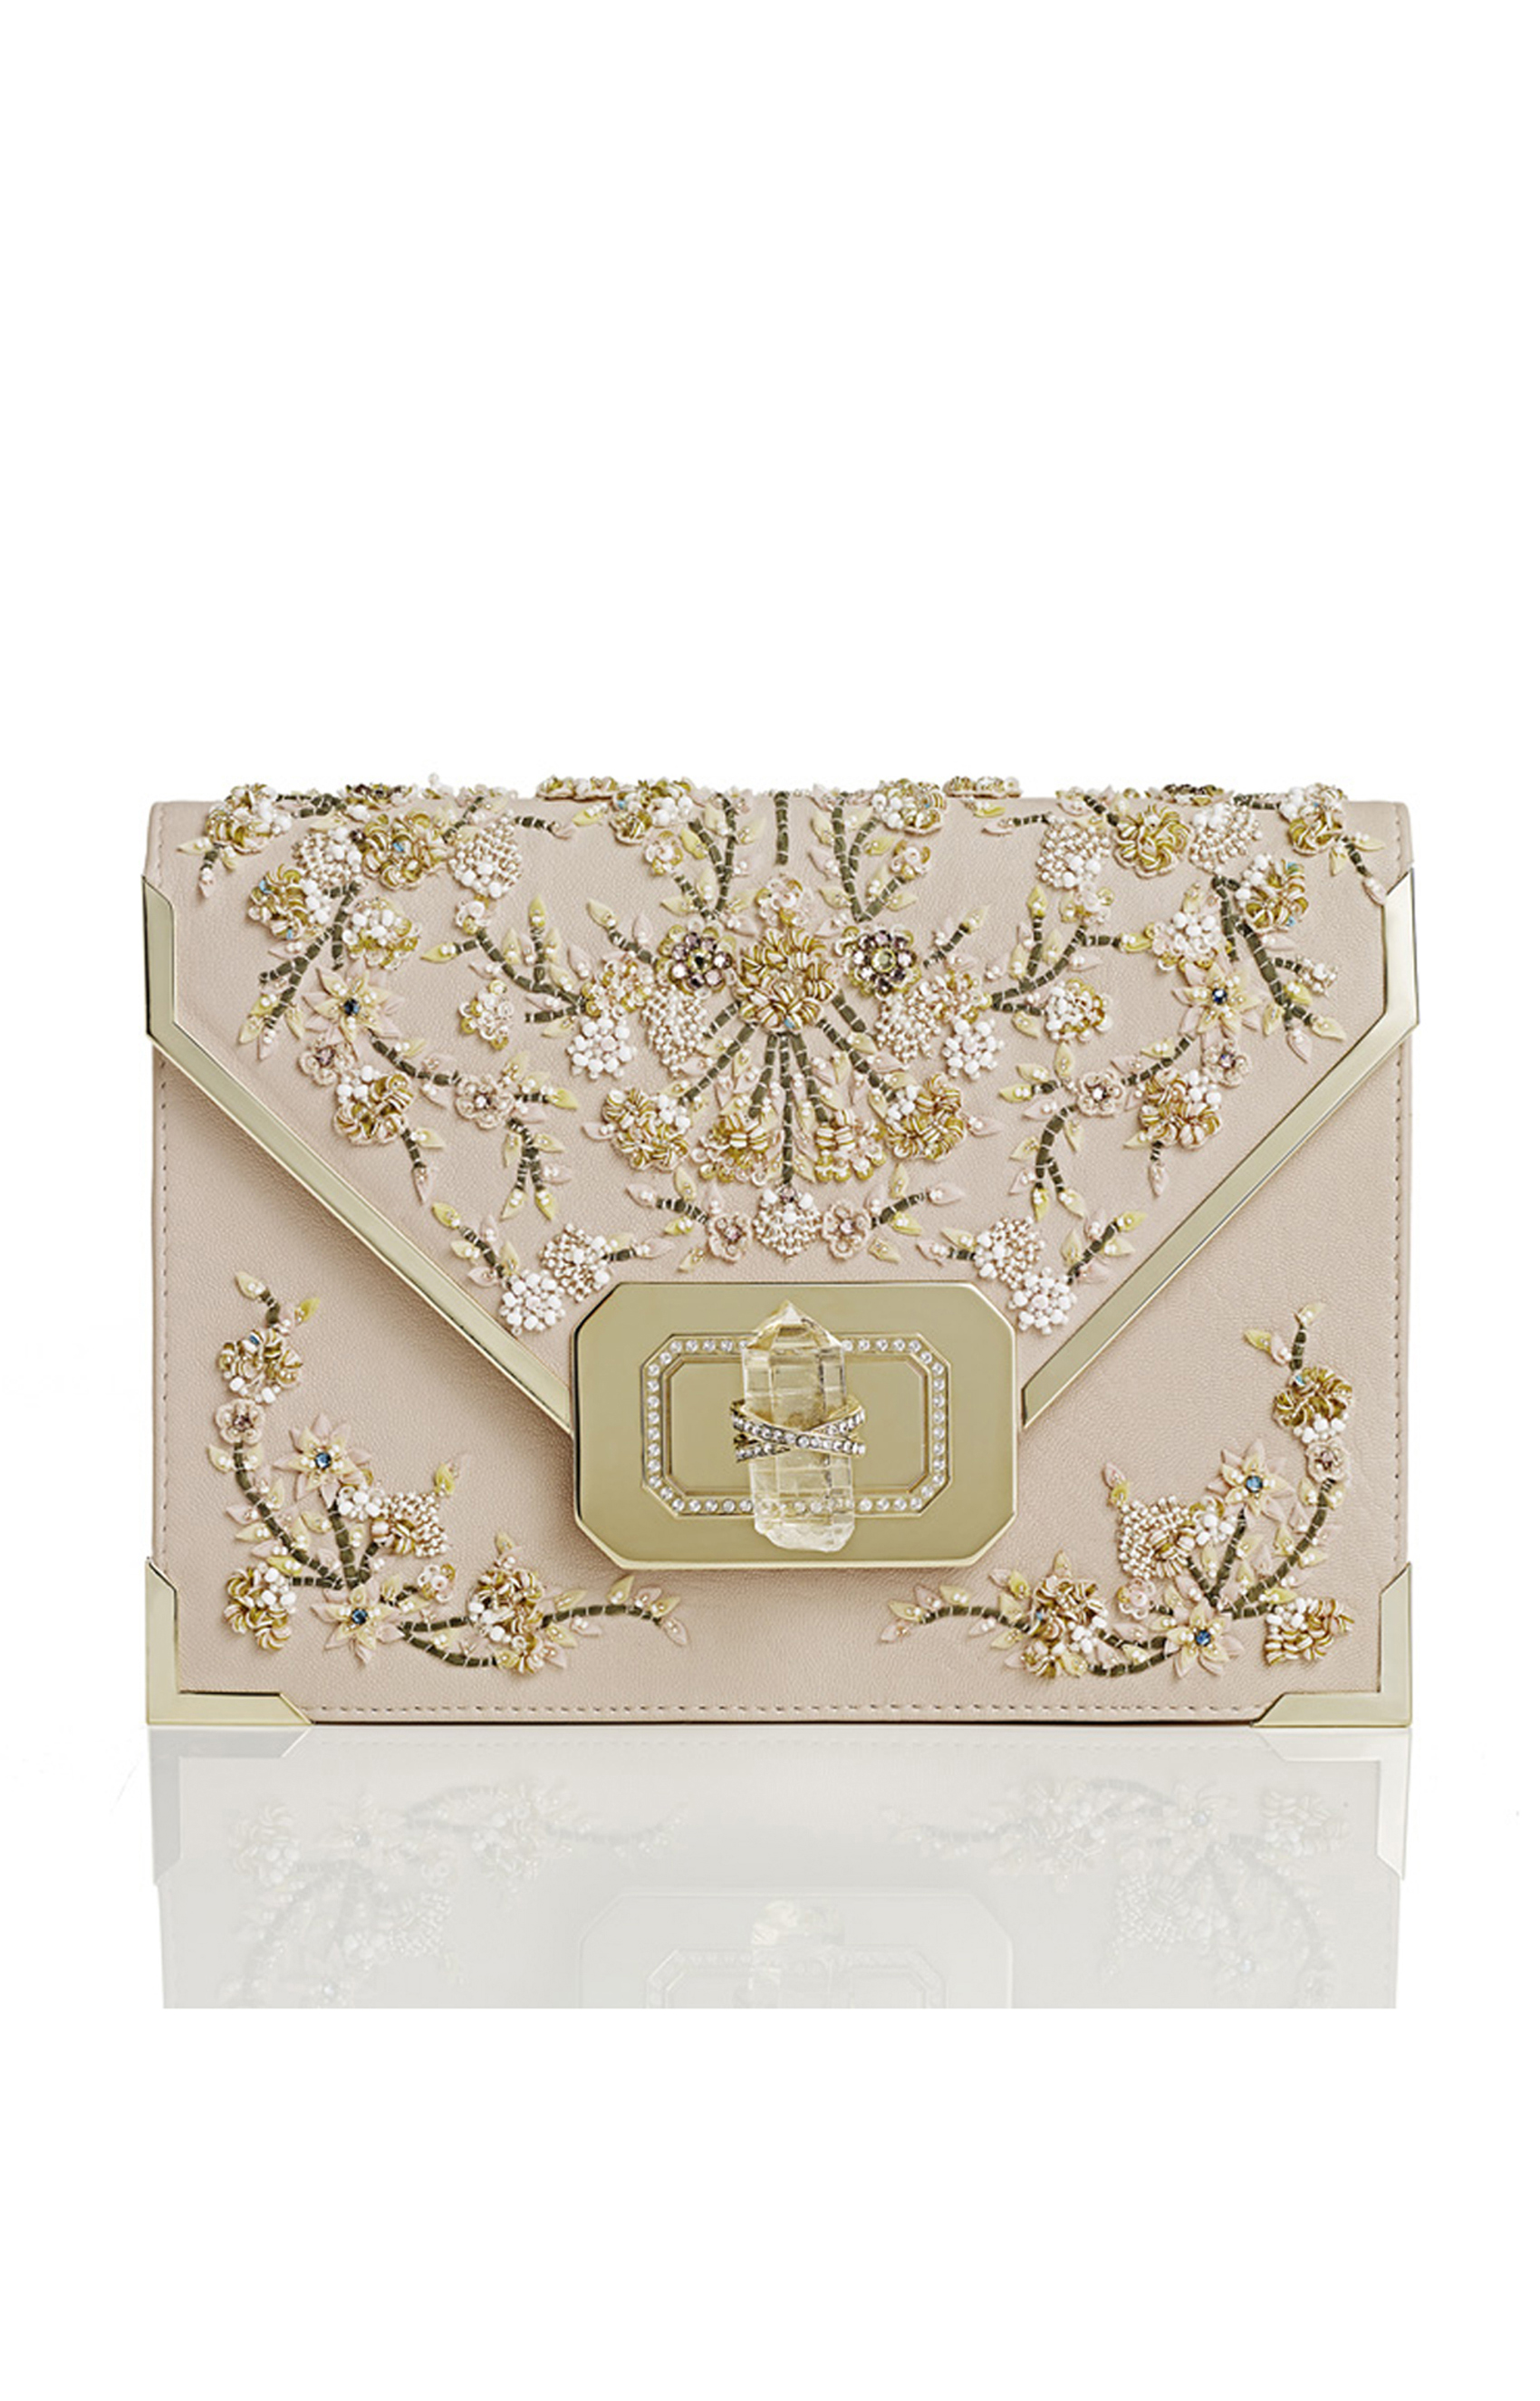 Marchesa <br>Handbag 08